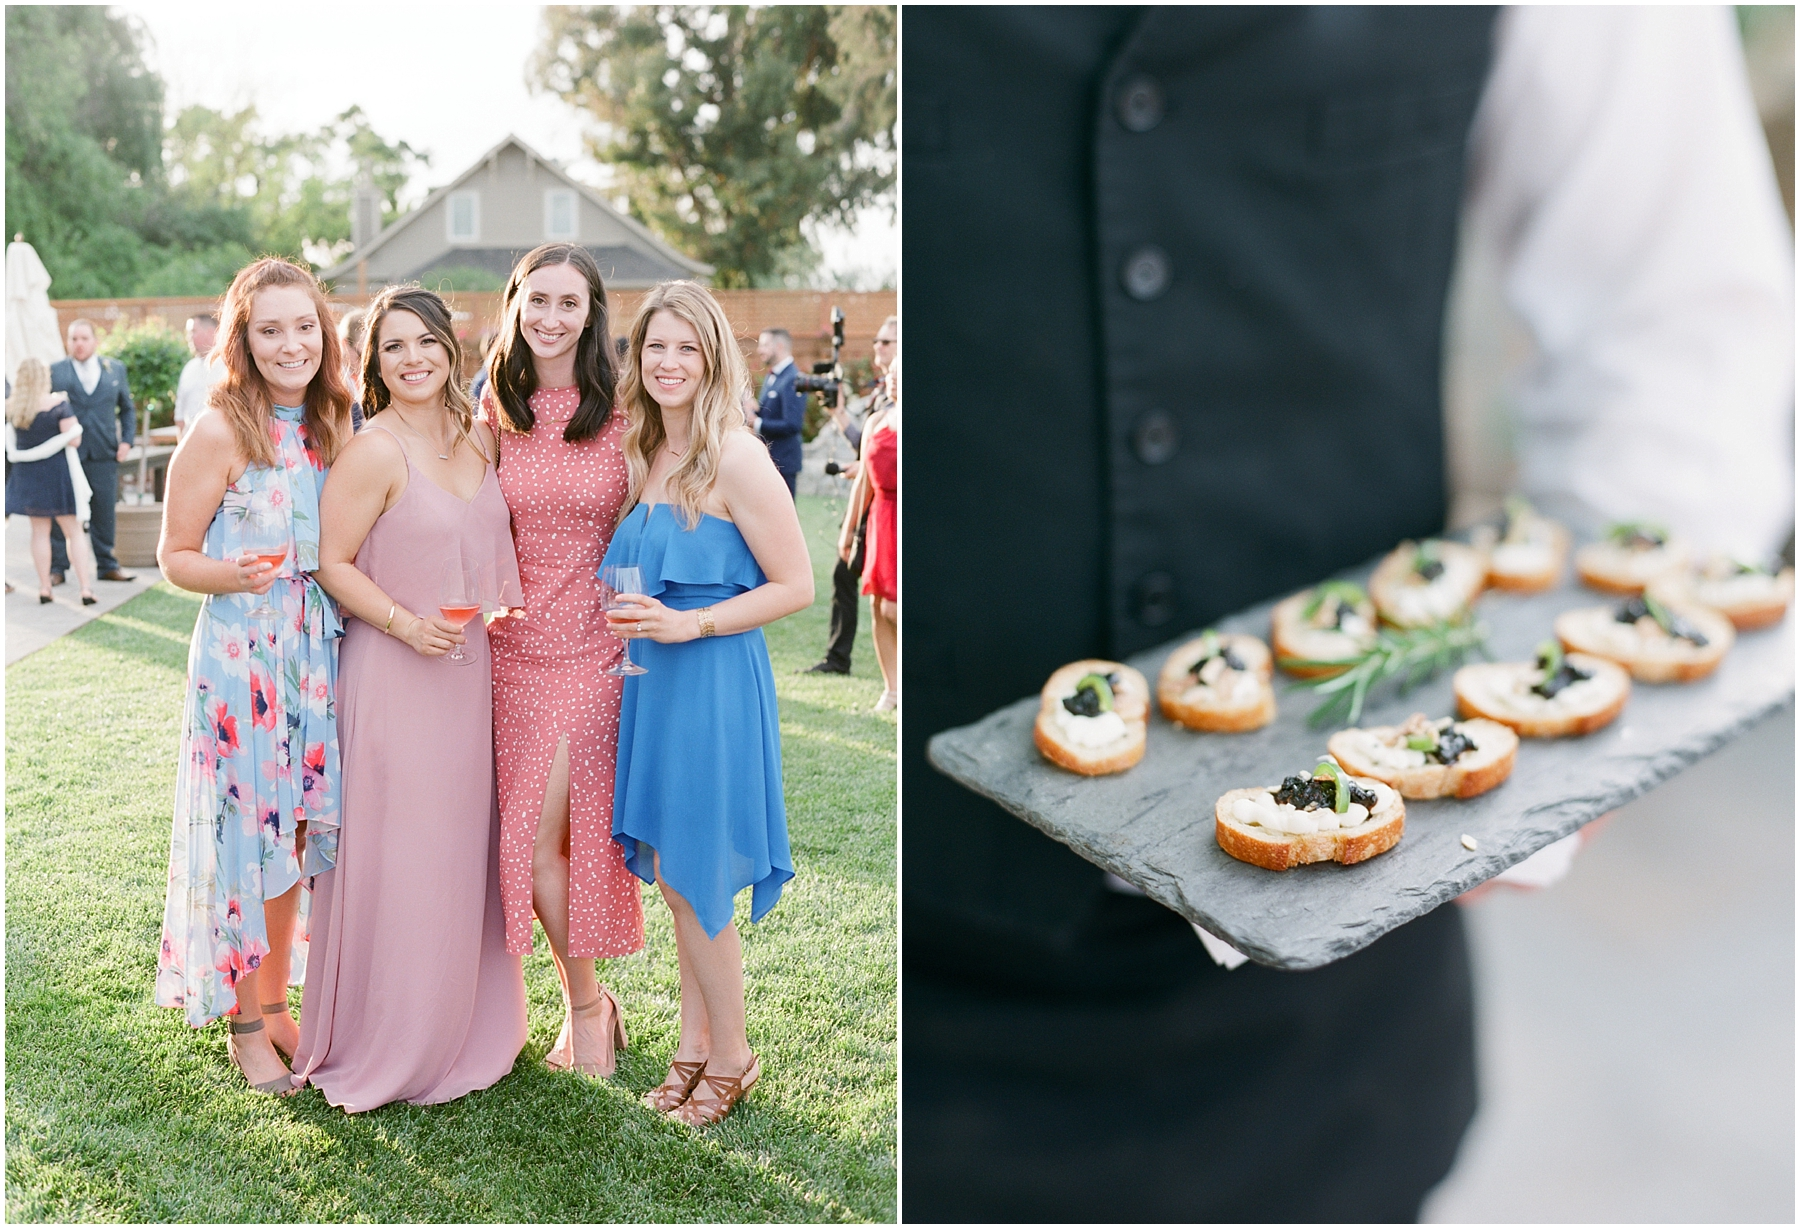 Muriettas-well-livermore-wedding-kristine-herman-photography-144.jpg